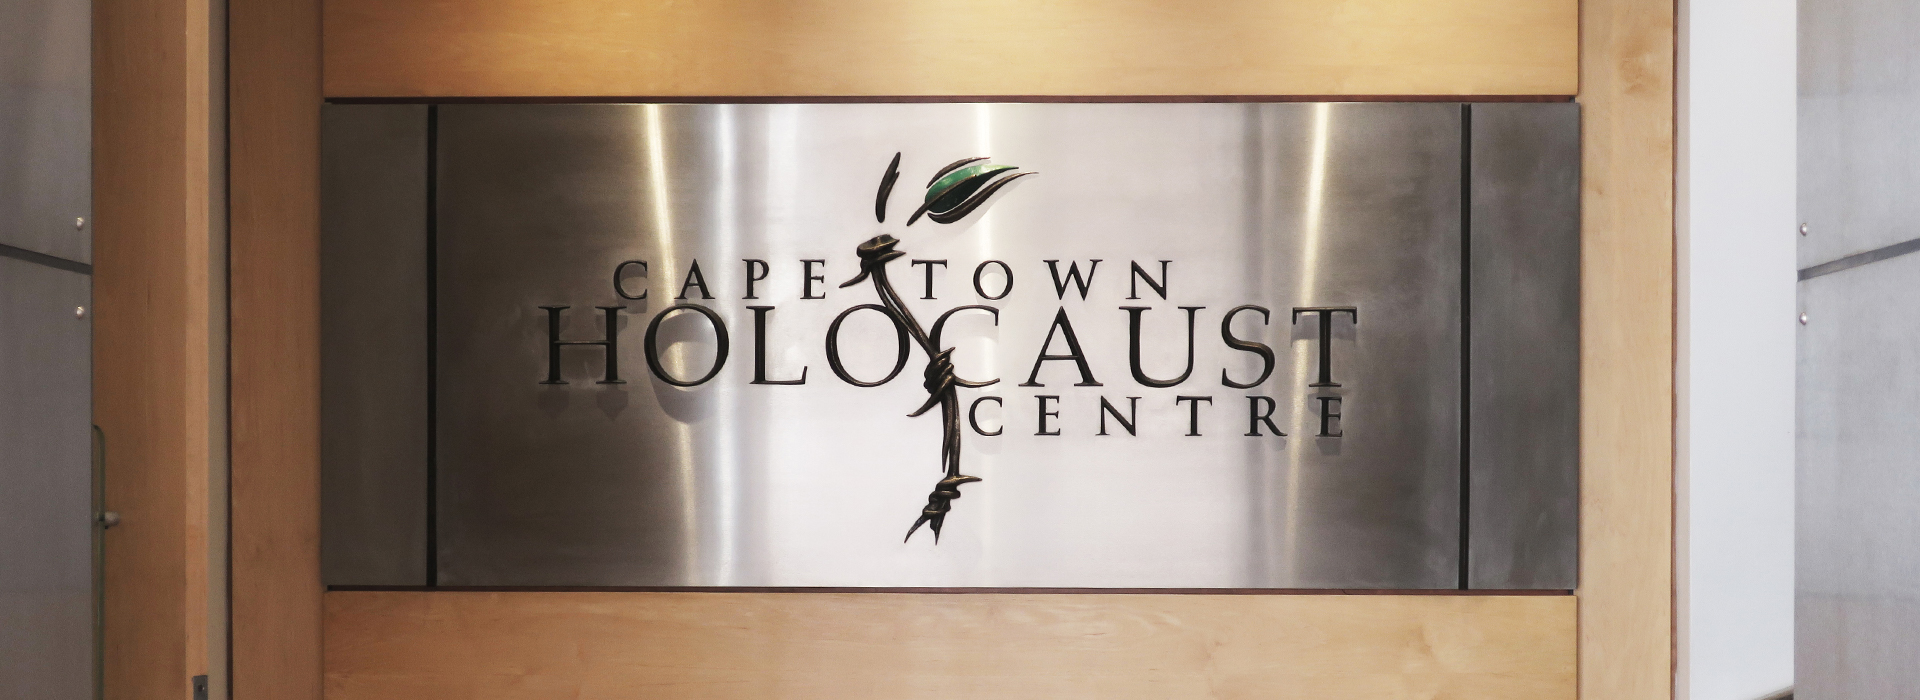 Contact - Cape Town Holocaust and Genocide Centre